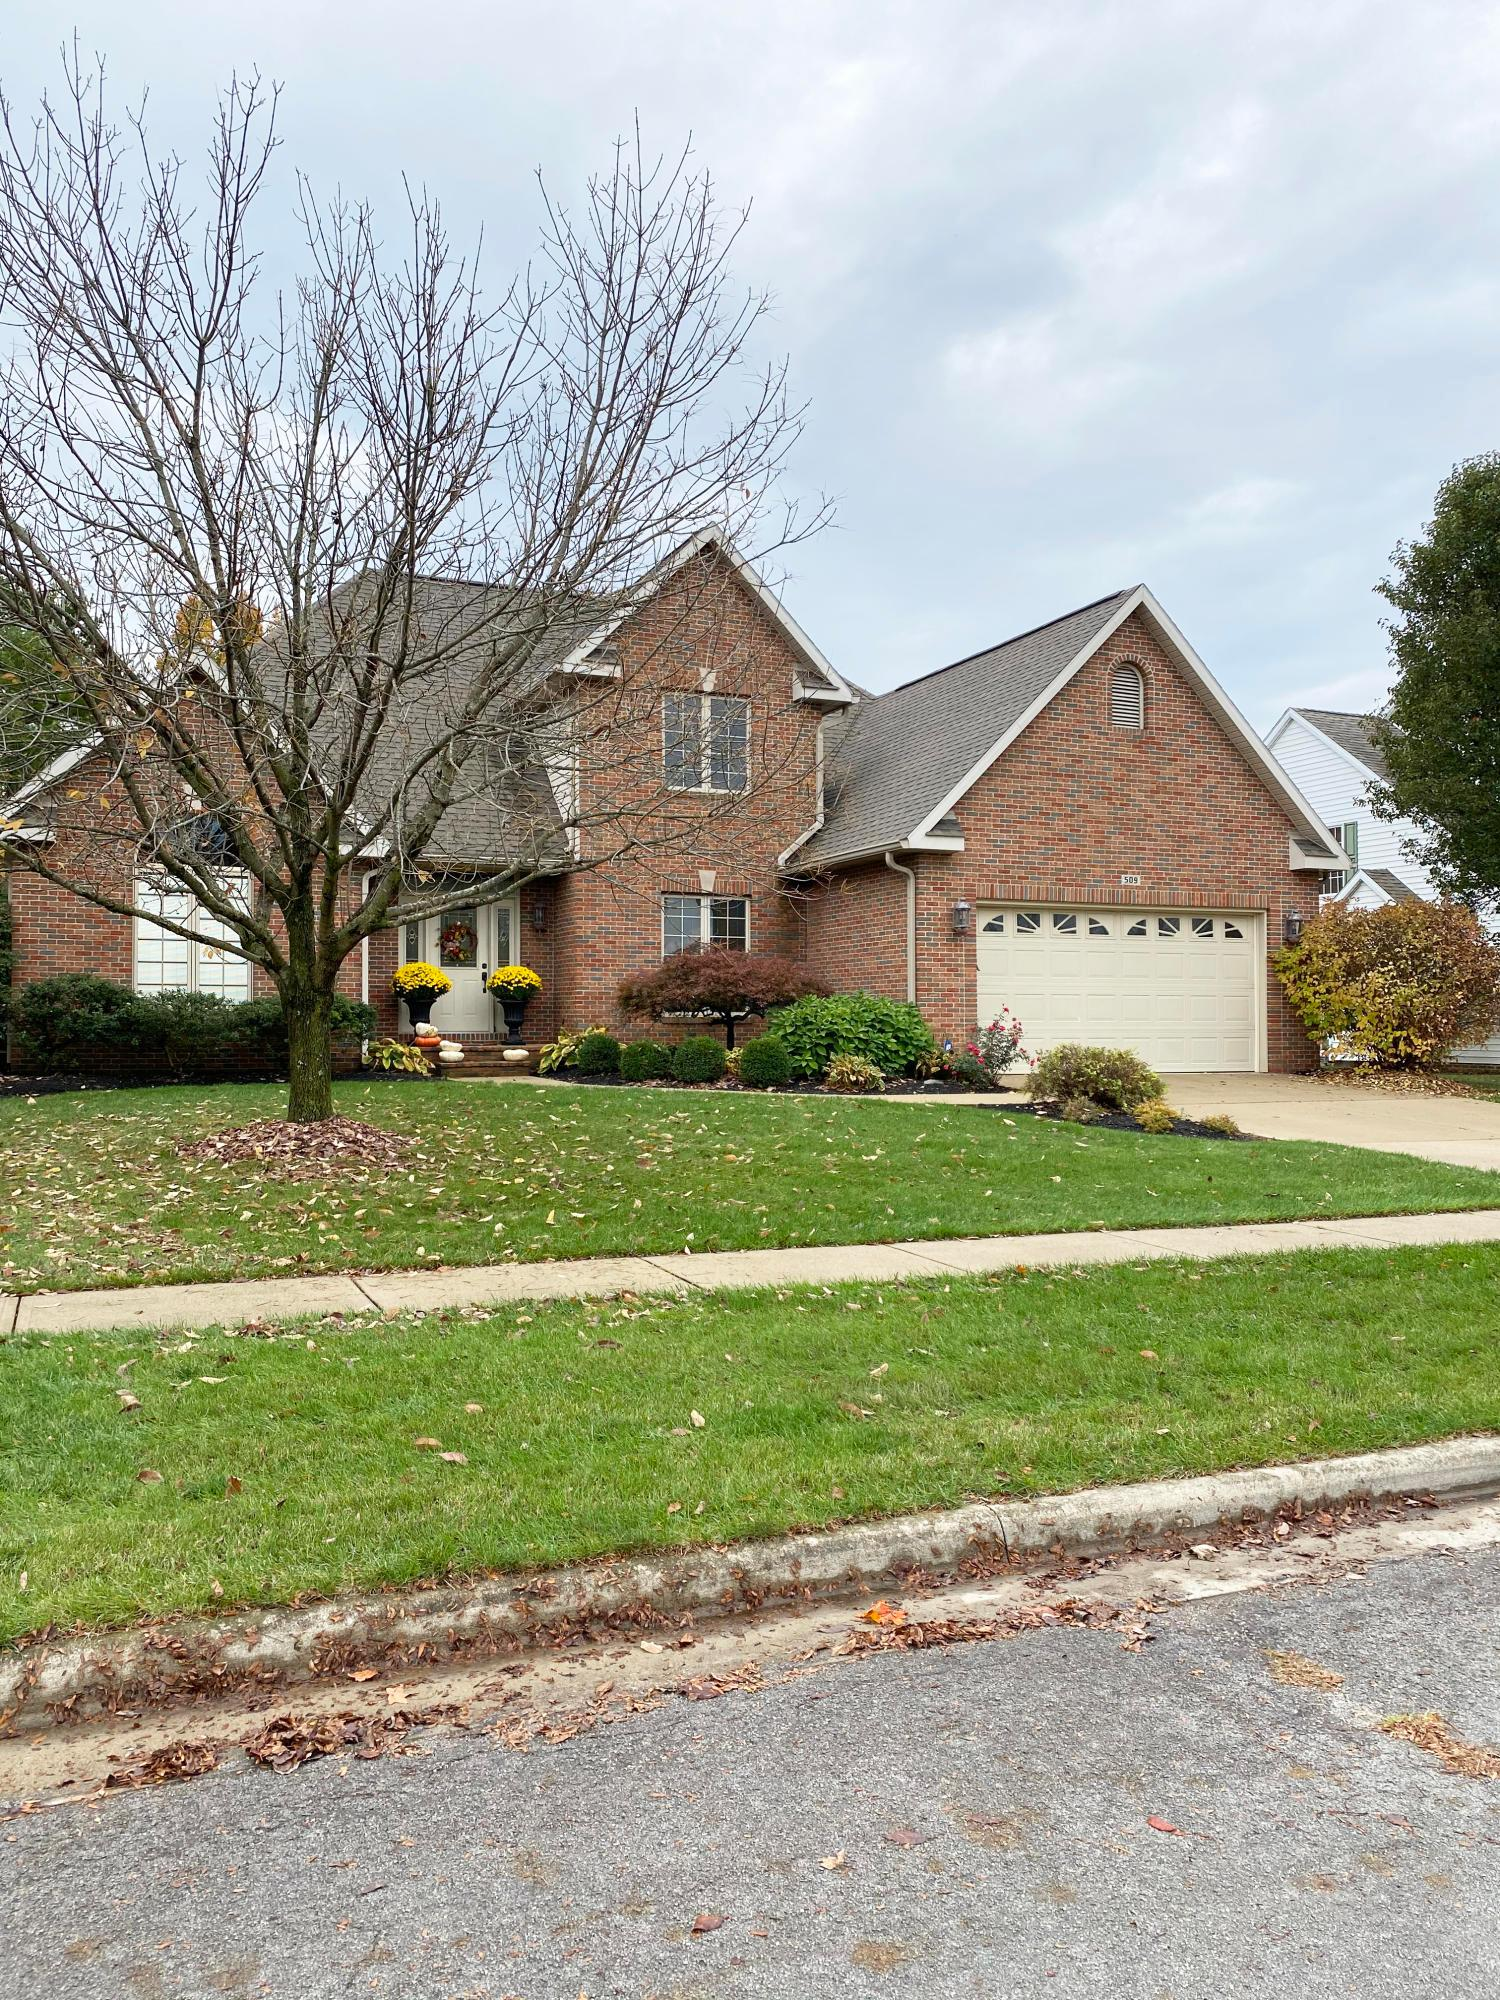 Property for sale at 509 Bowers Court, Circleville,  Ohio 43113